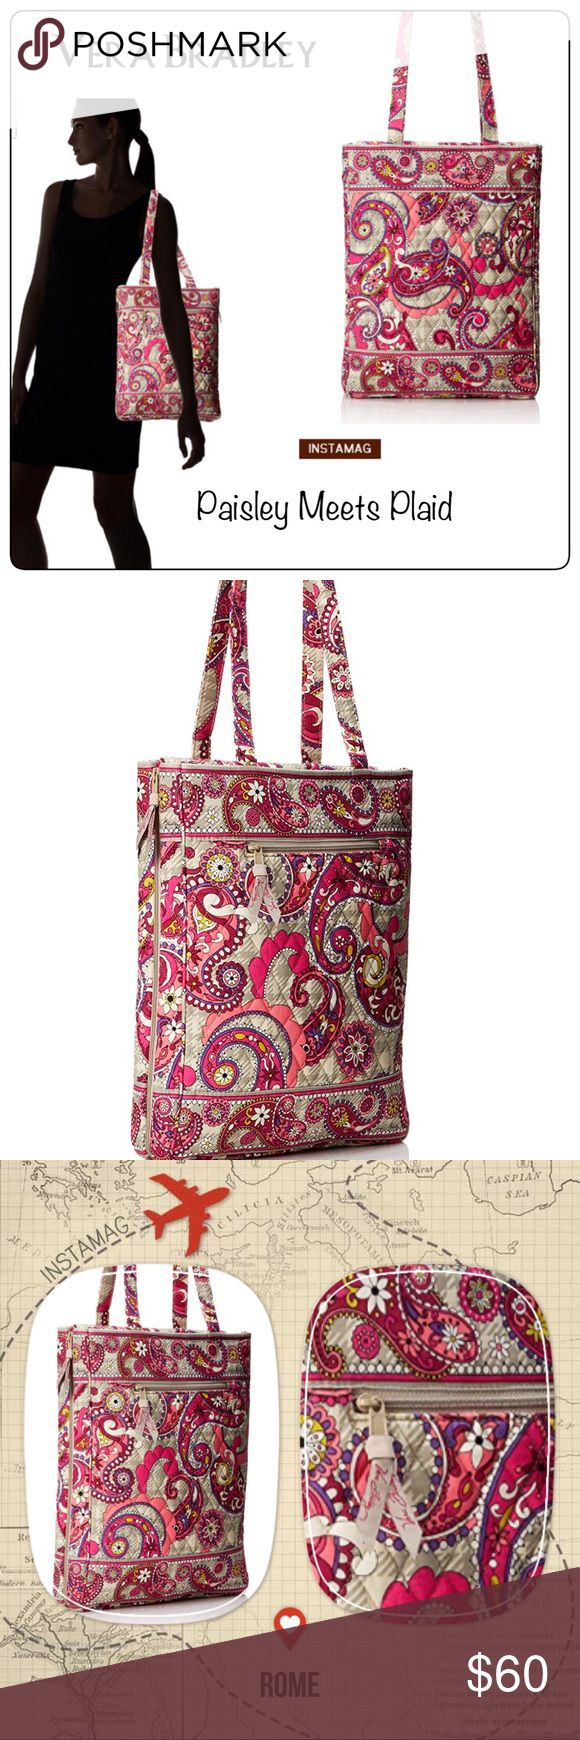 Vera Bradley Computer Laptop Tote Vera Bradley  Travel Laptop Tote  Paisley Meets Plaid *retired* 